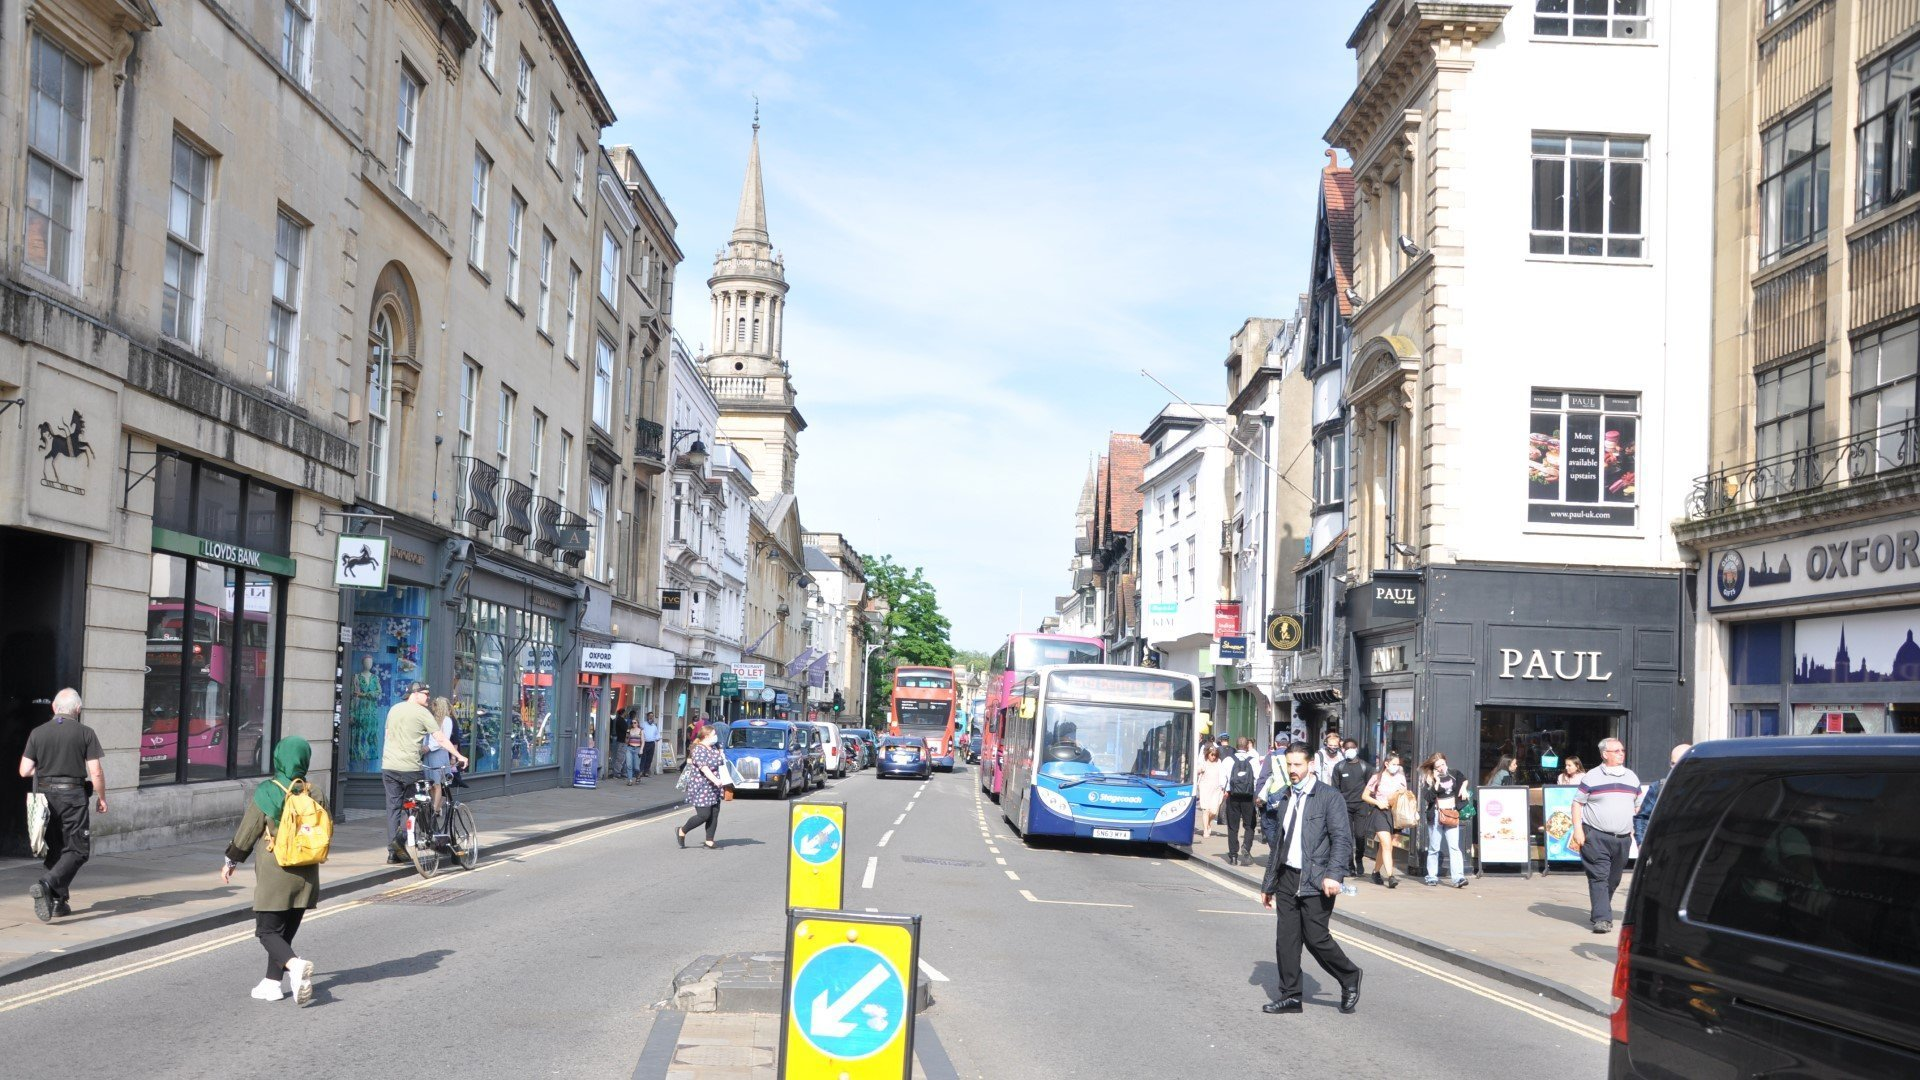 Oxford's Zero Emission Zone pilot launch moved to February 2022